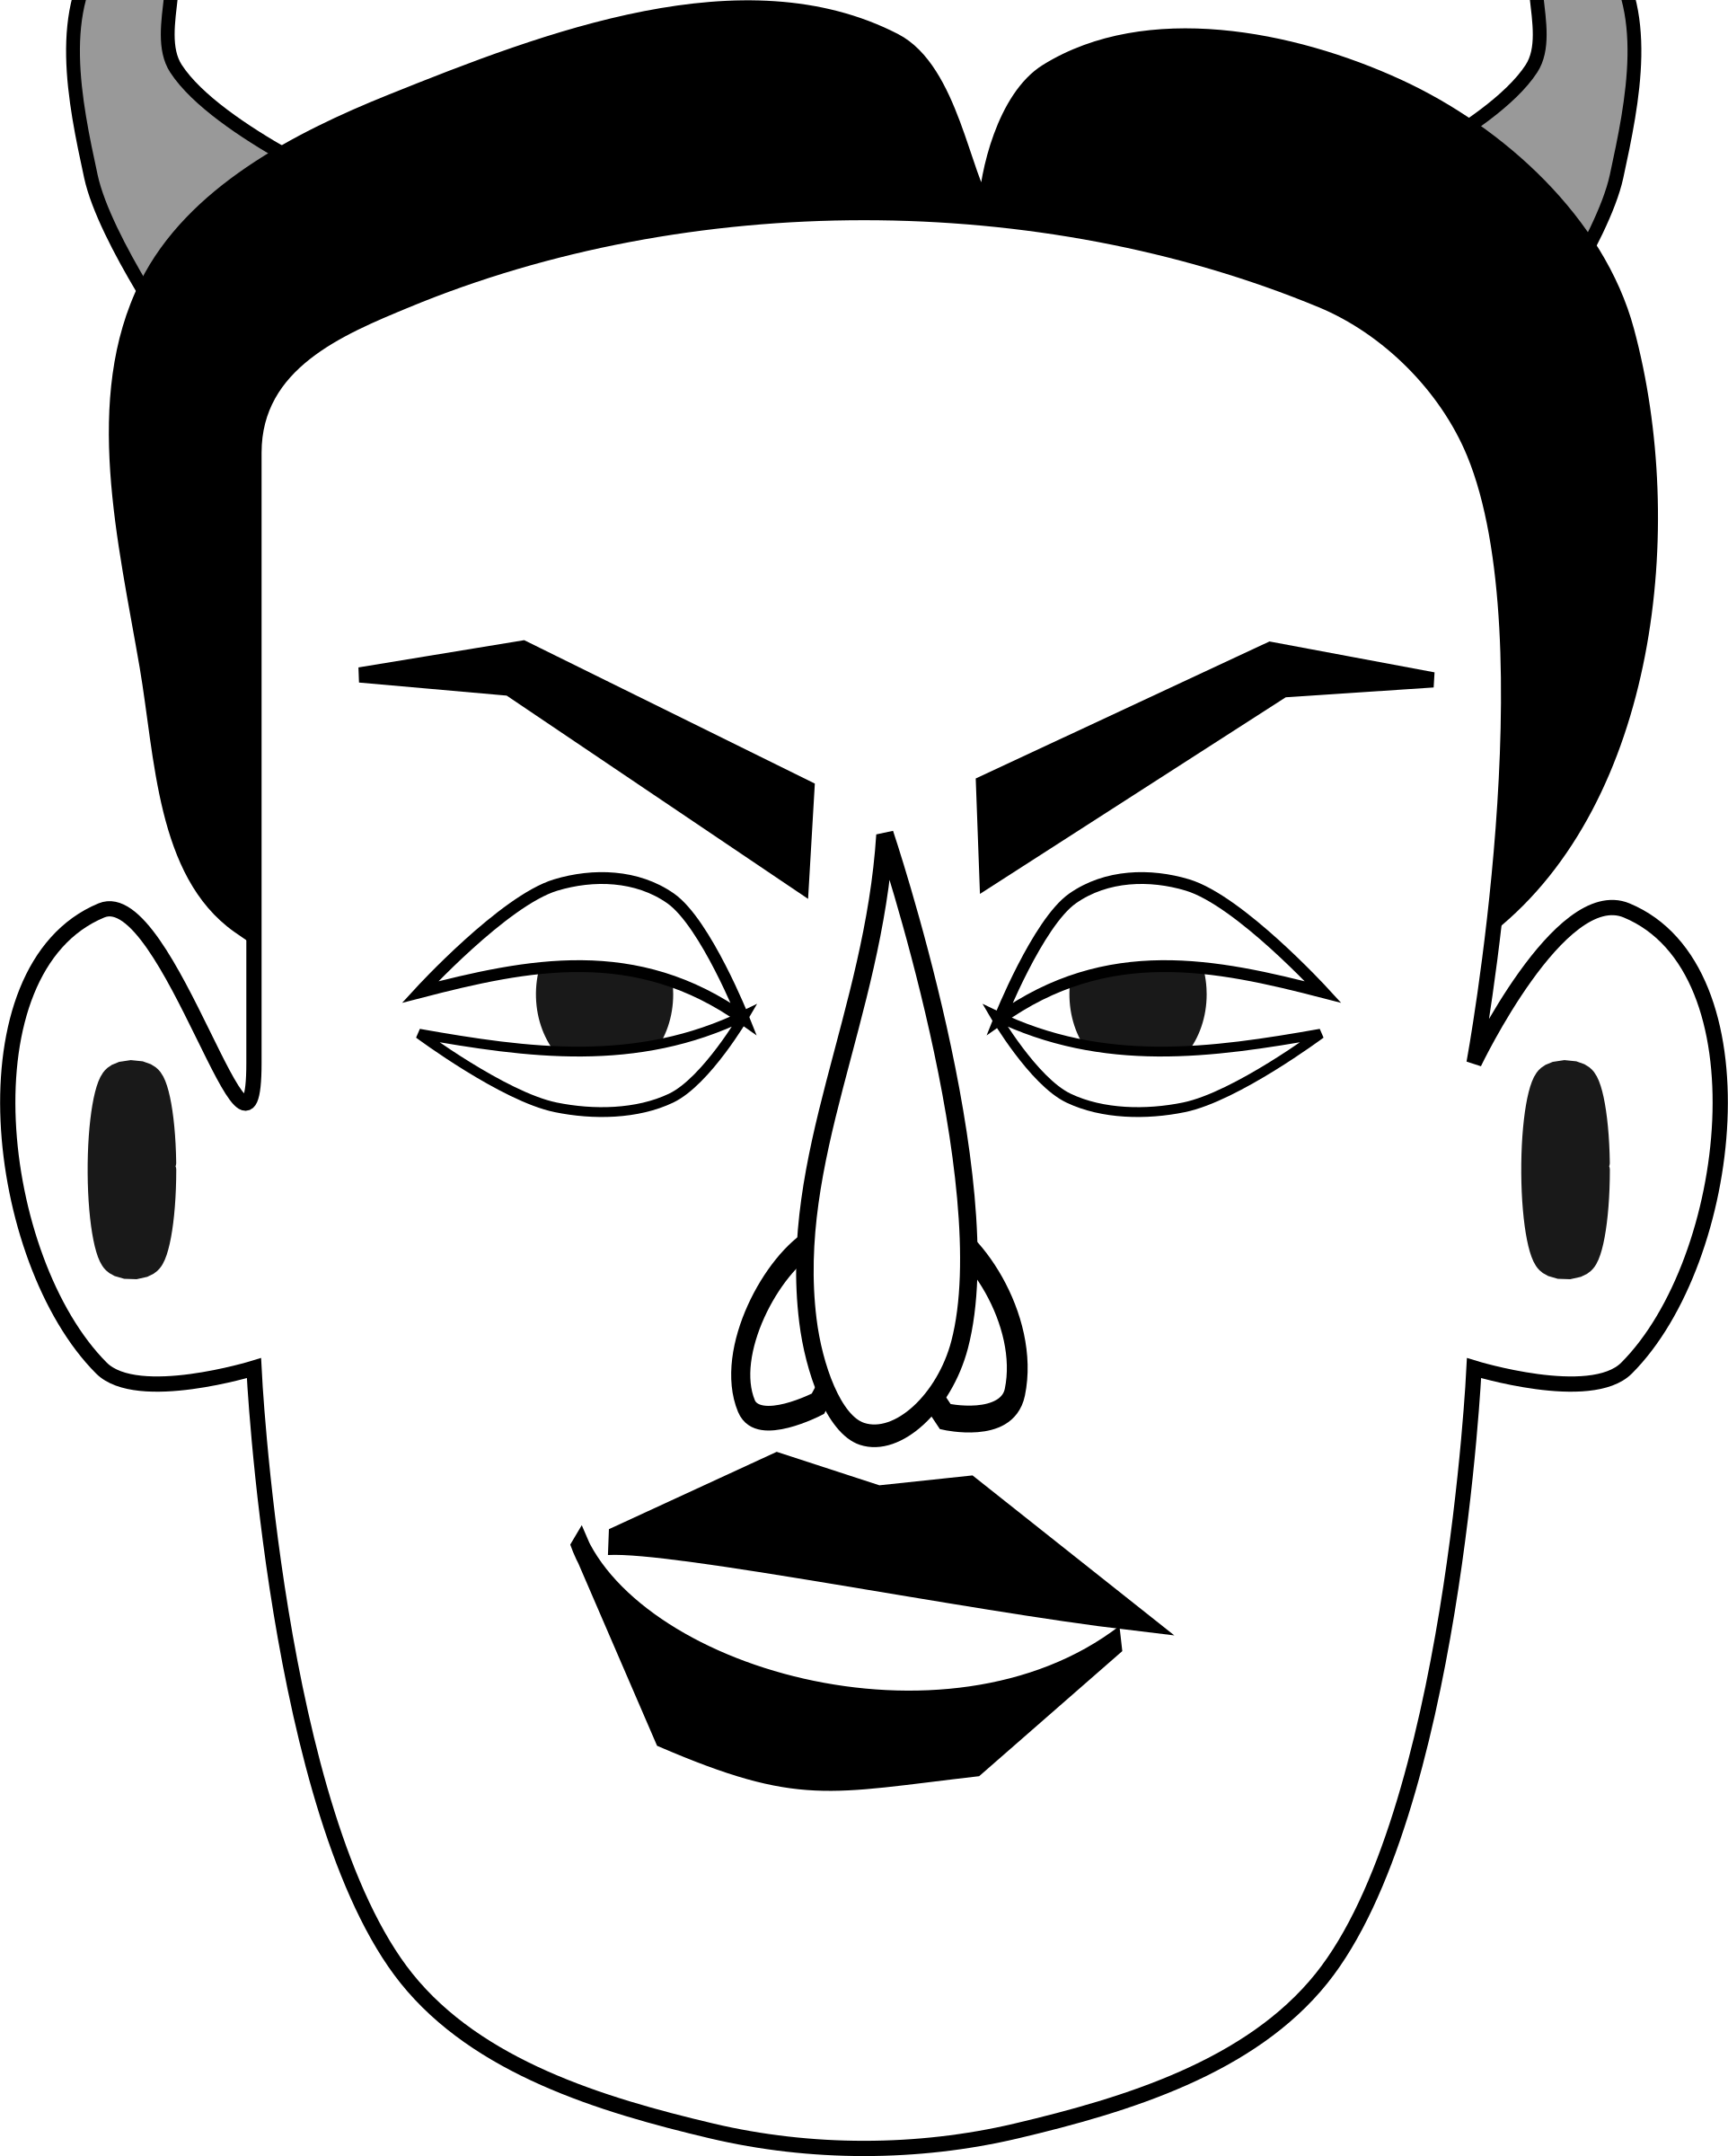 Diabolical emotion faces big. Father clipart male face